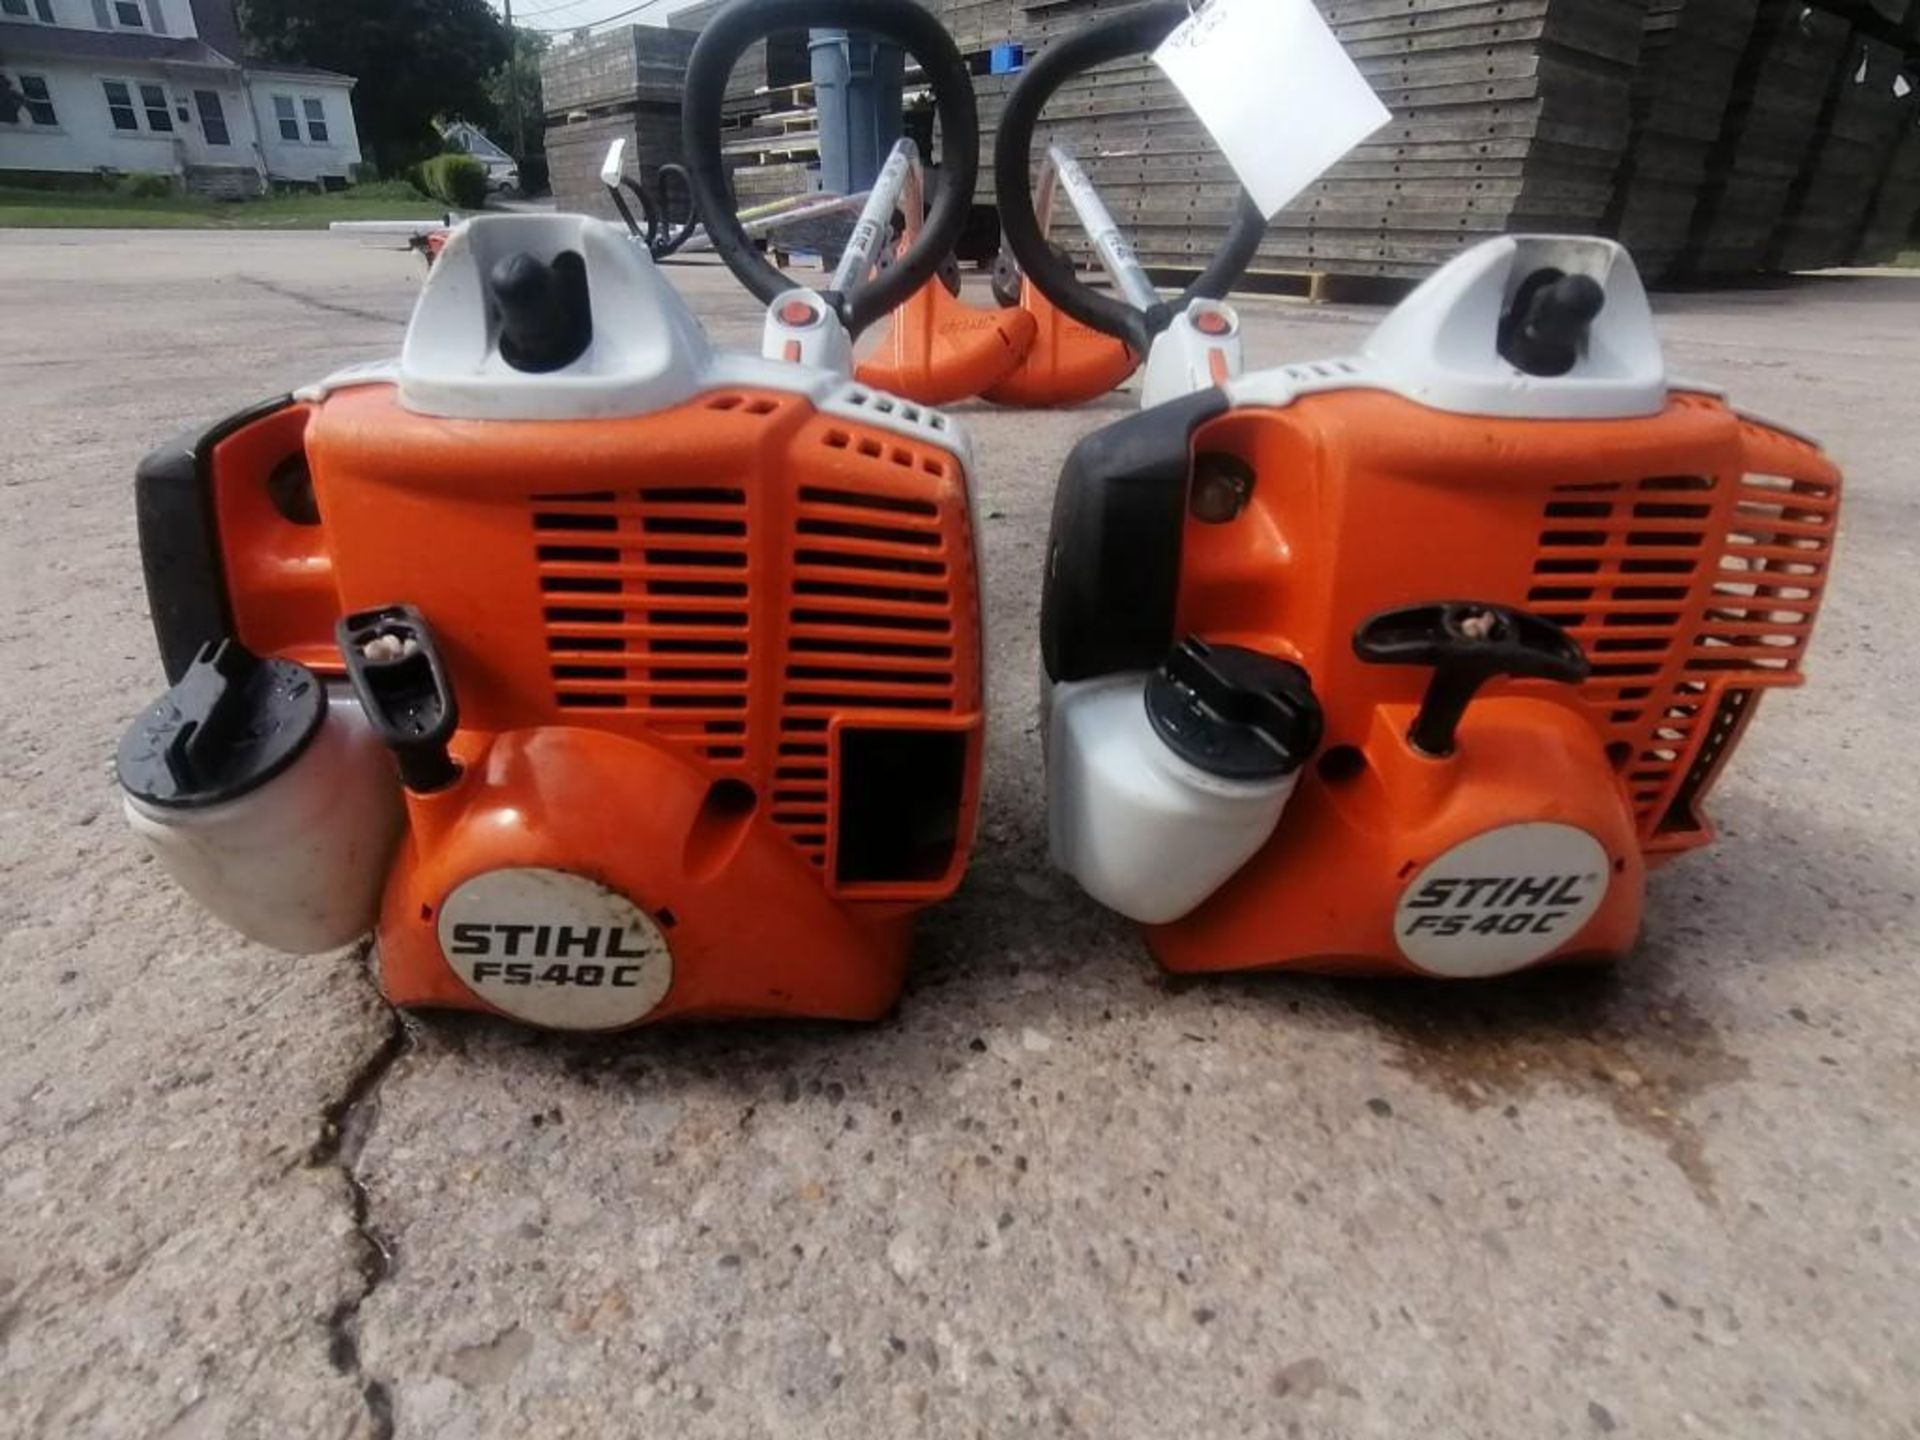 Lot 38 - (2) Stihl FS40C String Trimmer. Located at 301 E Henry Street, Mt. Pleasant, IA 52641.